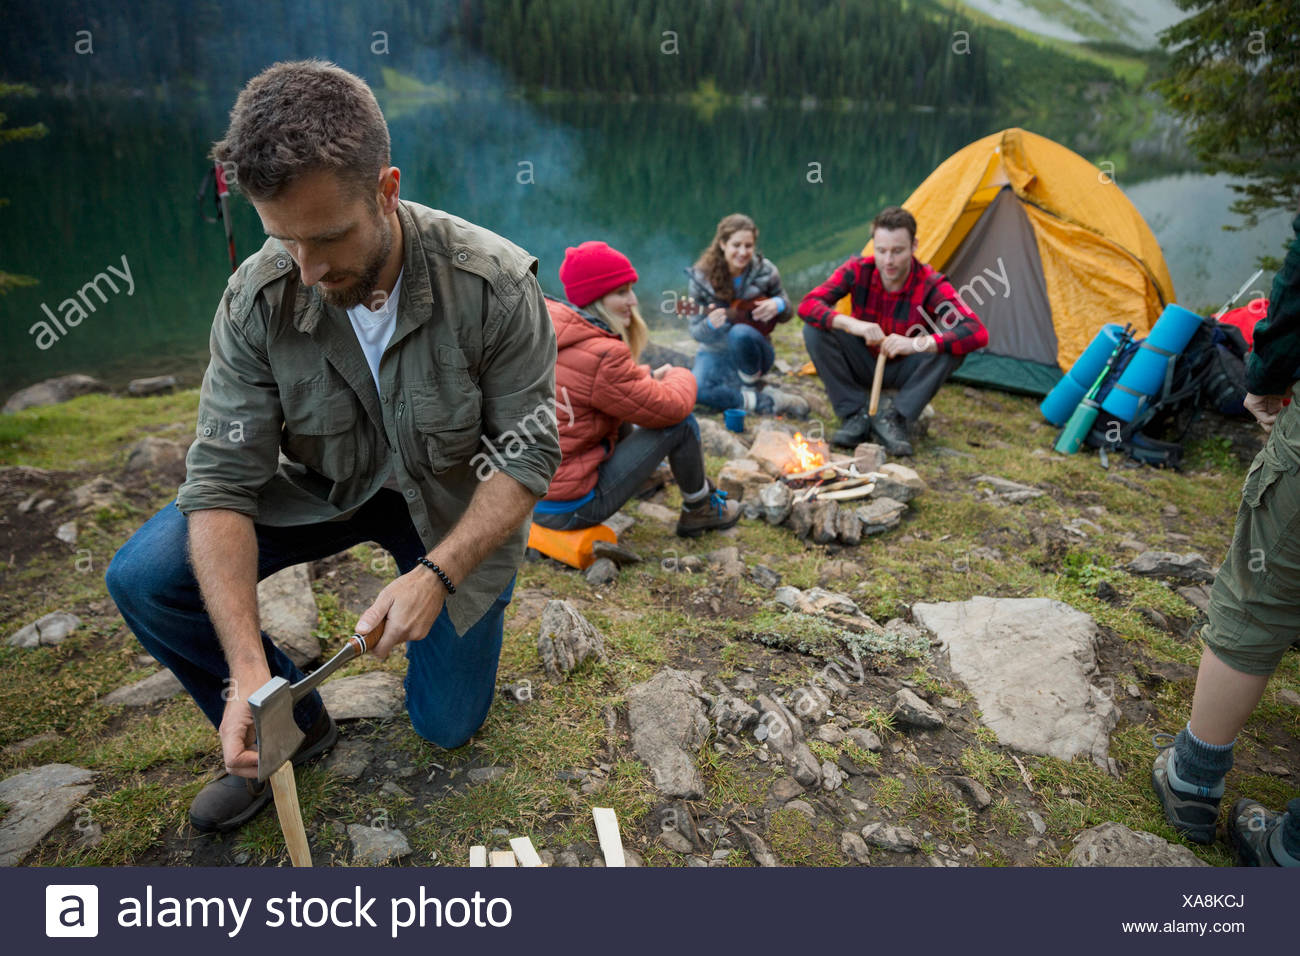 Man splitting wood with ax near campfire at lakeside campsite - Stock Image